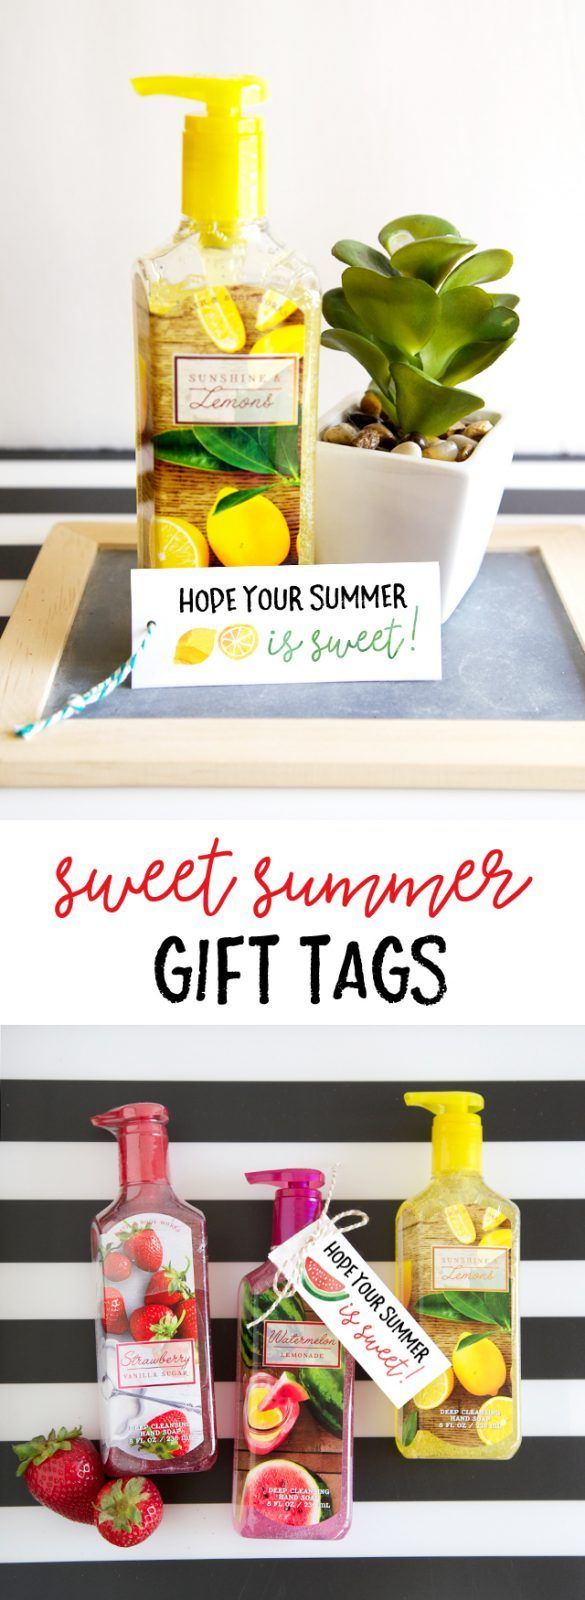 Summer Hand Soap Gift Tags - printable & gift idea for teachers, neighbors and f...